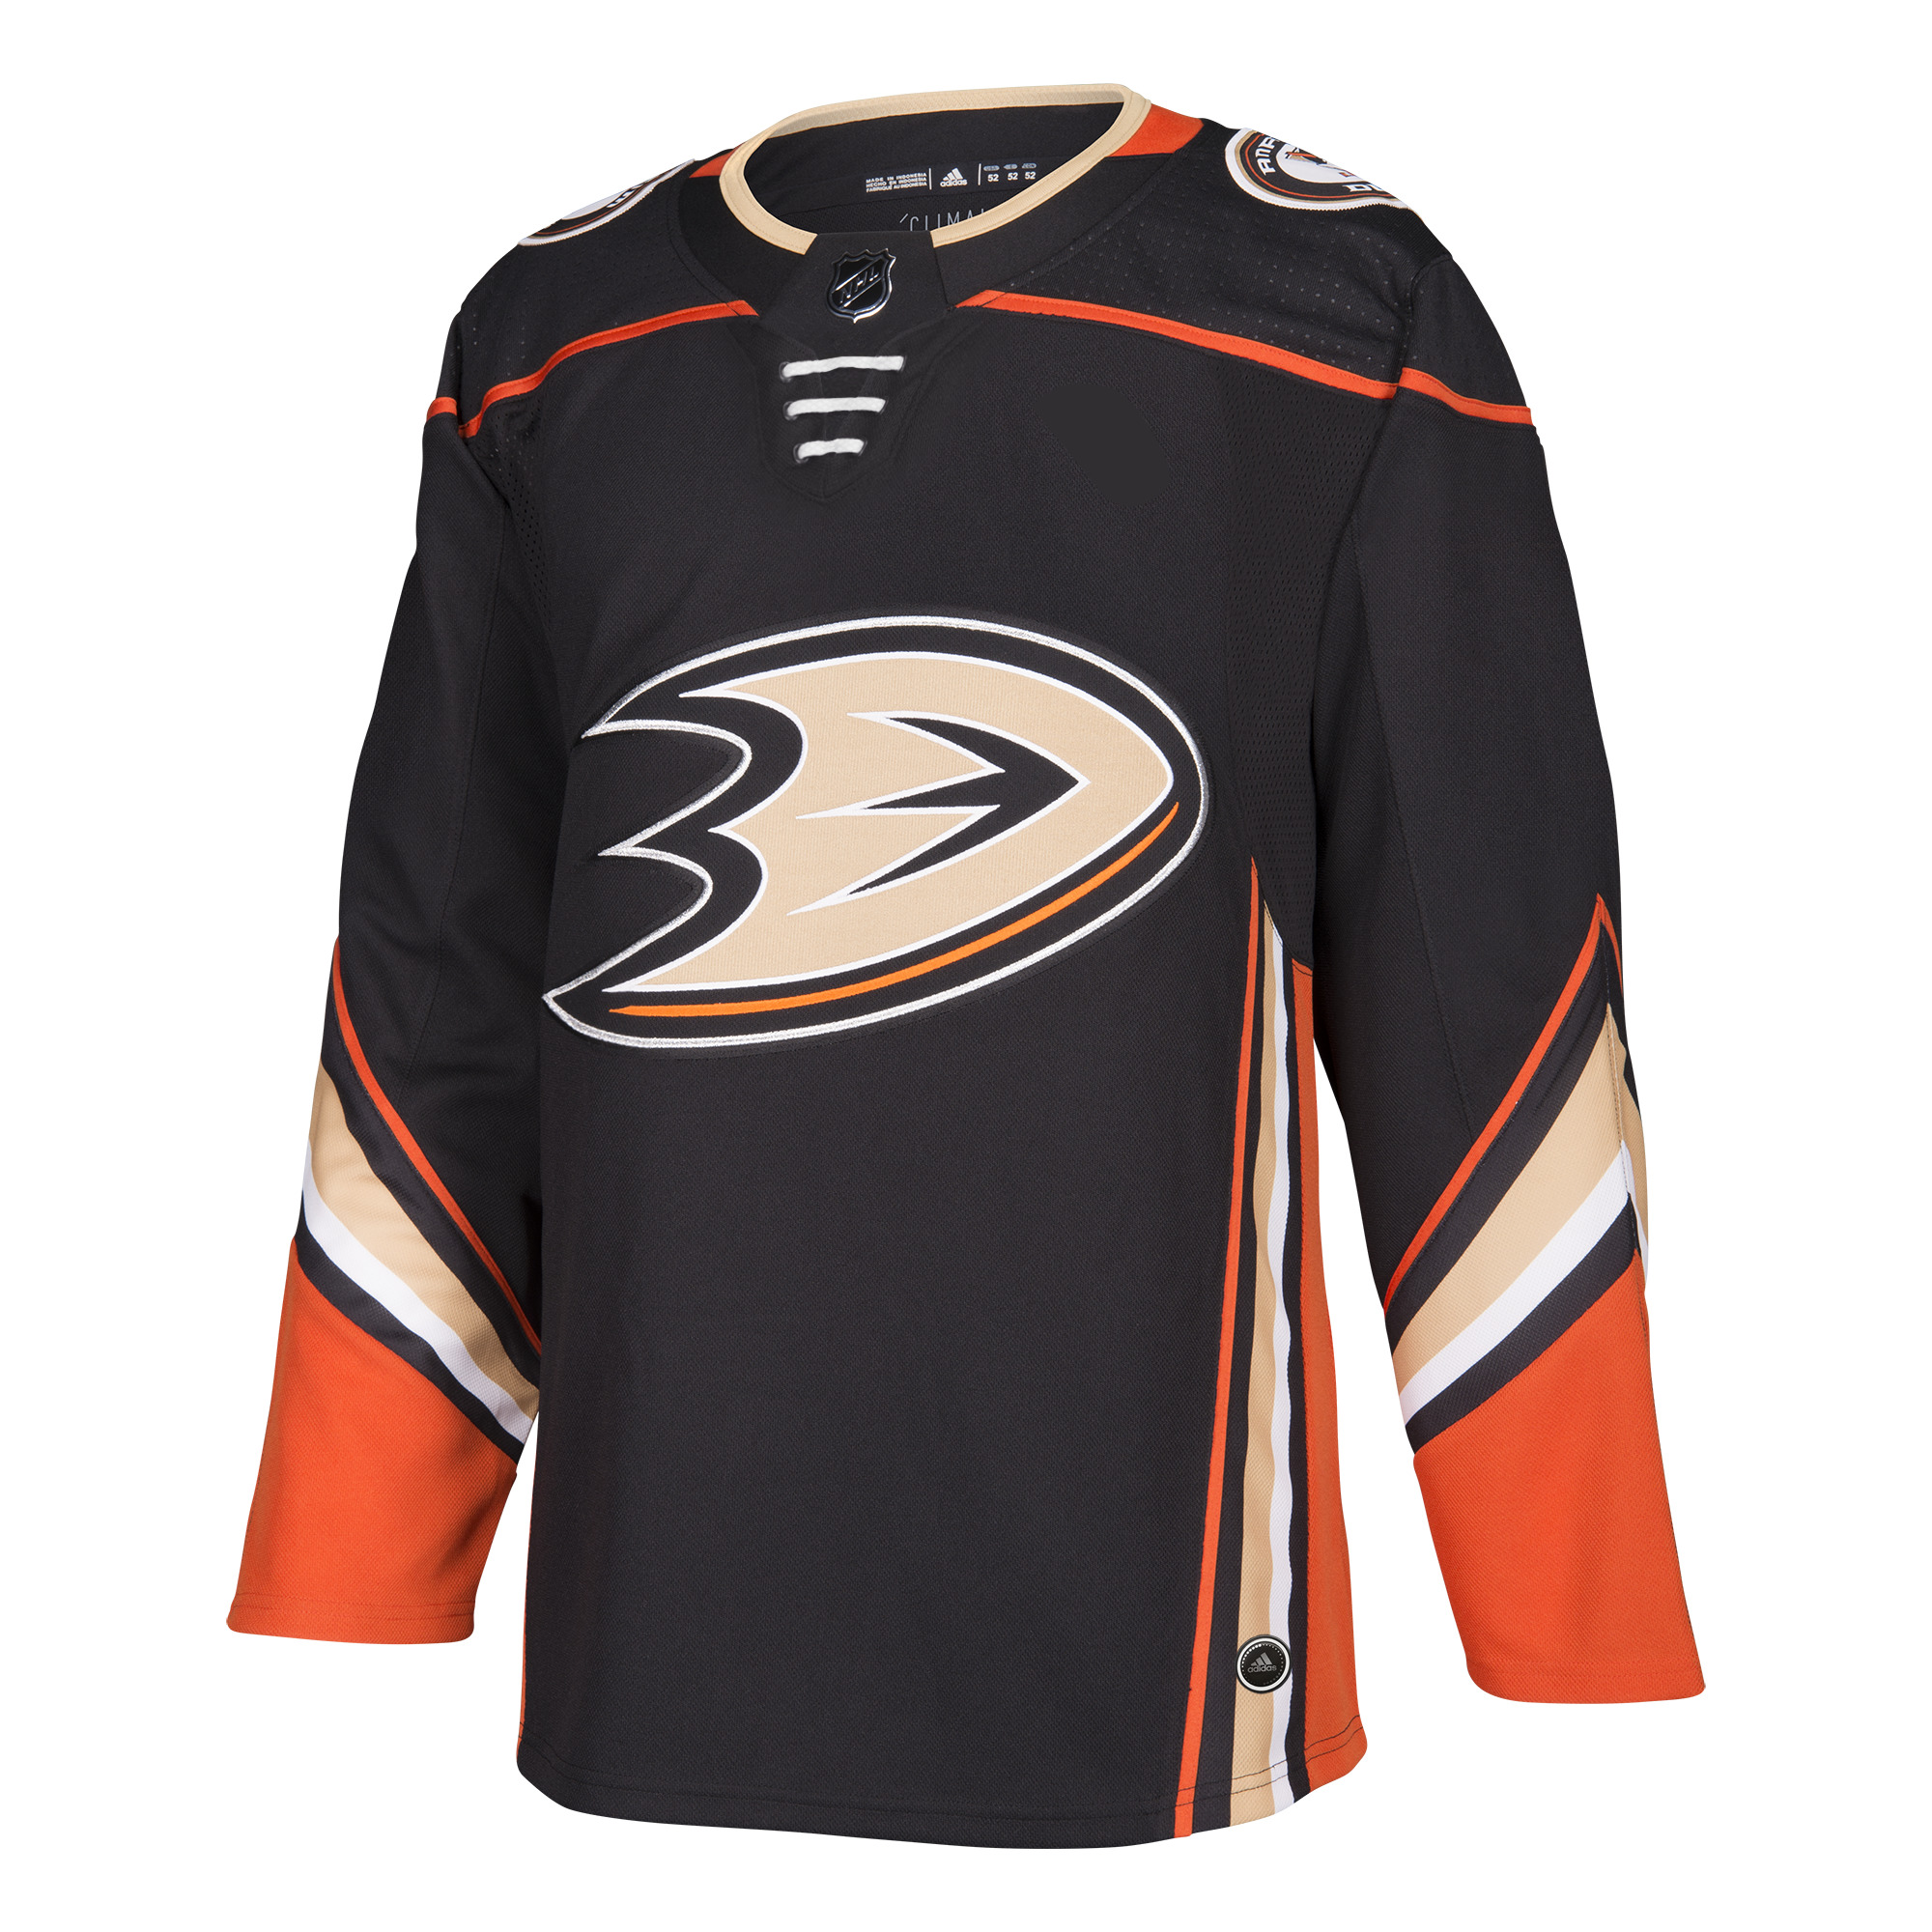 Anaheim Ducks Adidas NHL Men's Climalite Authentic Team Hockey Jersey